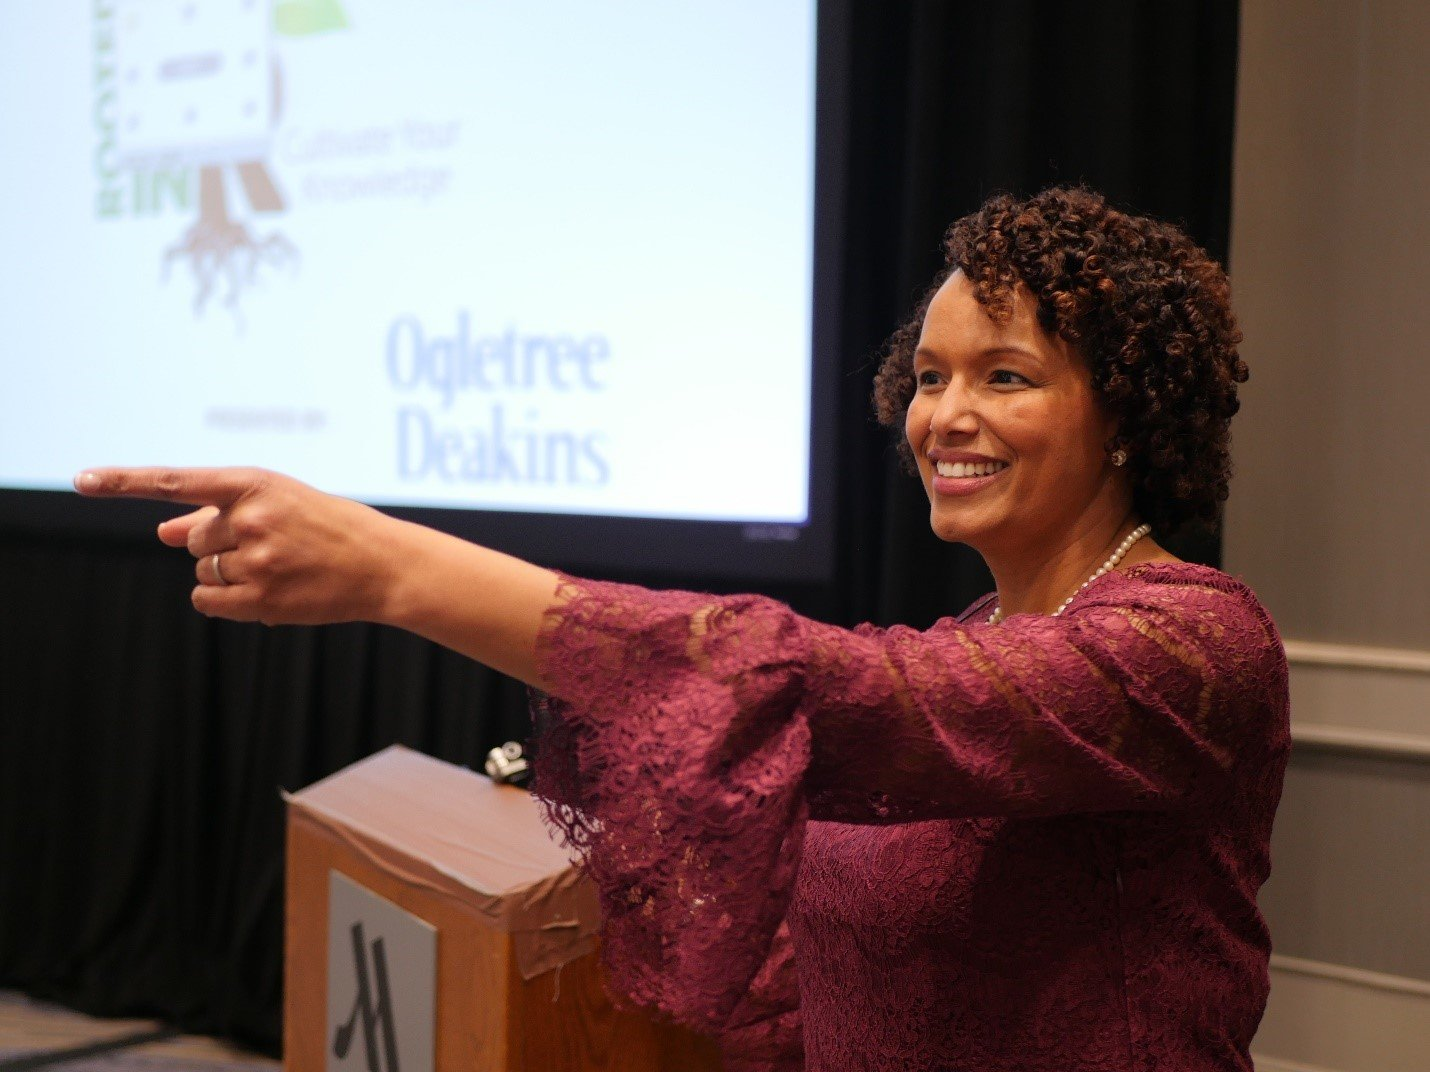 Heather Younger, speaking in a conference setting, gesturing to the attendees.